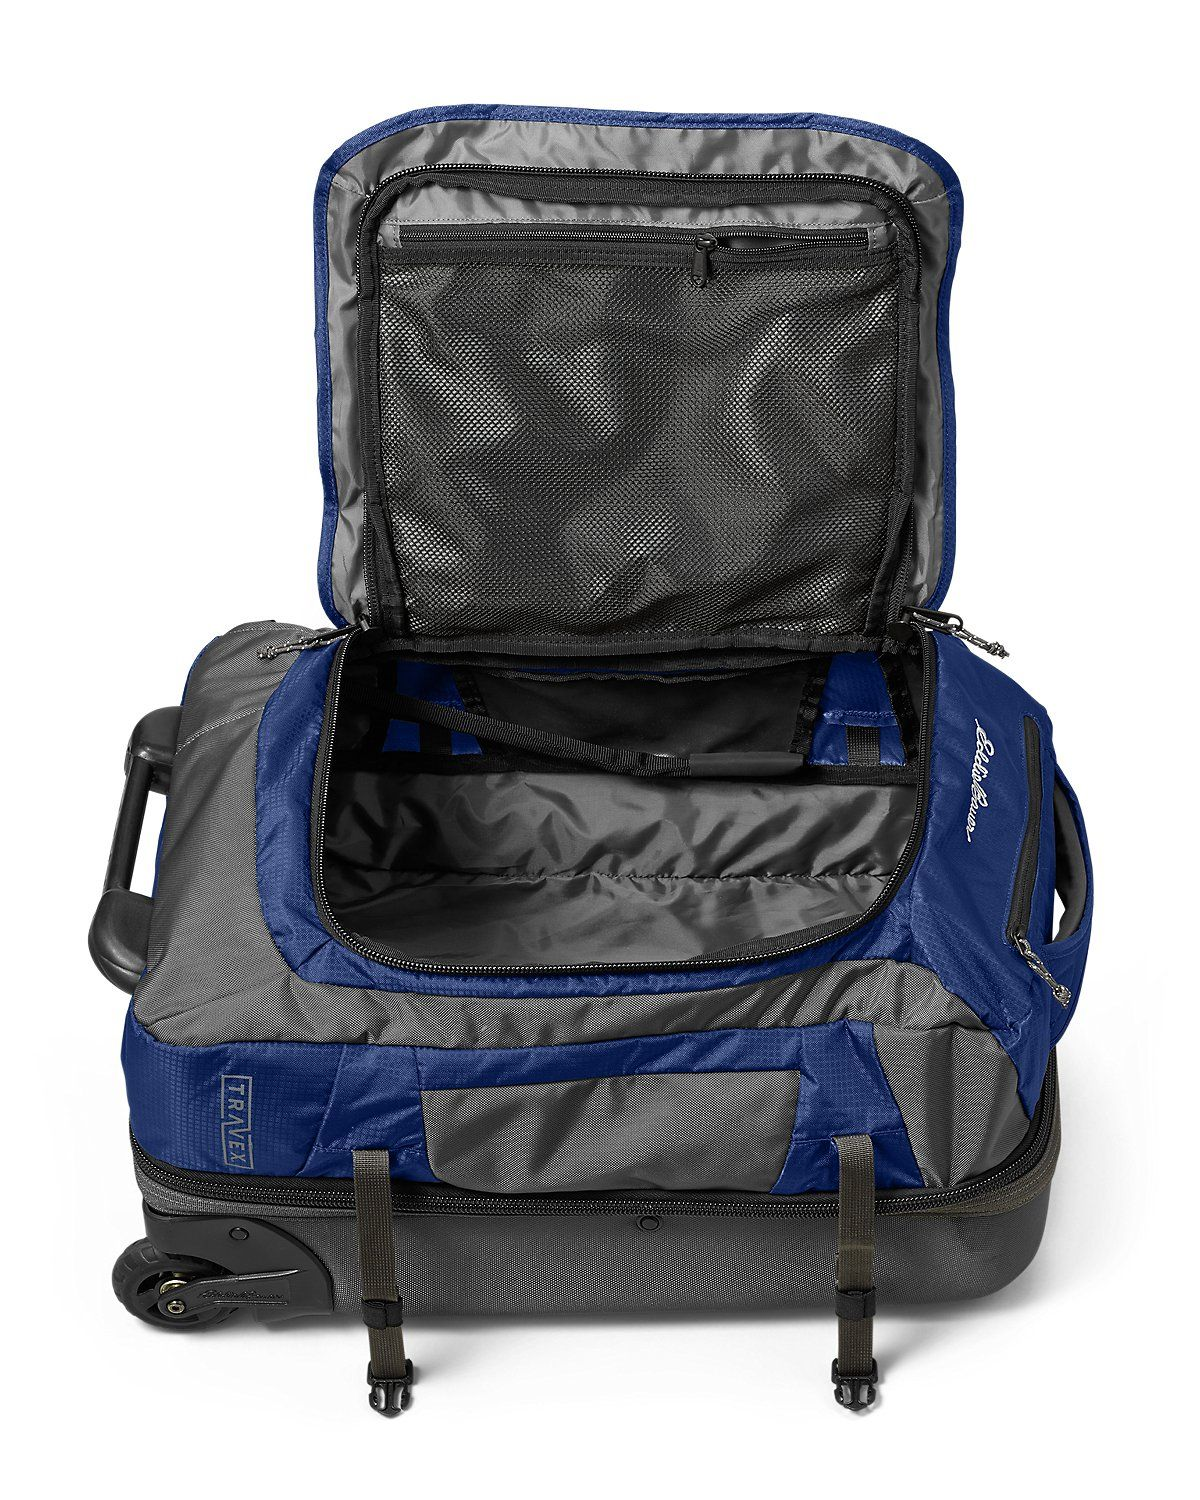 Expedition Drop Bottom Rolling Duffel - Medium   Eddie Bauer ... 2e6a43d402